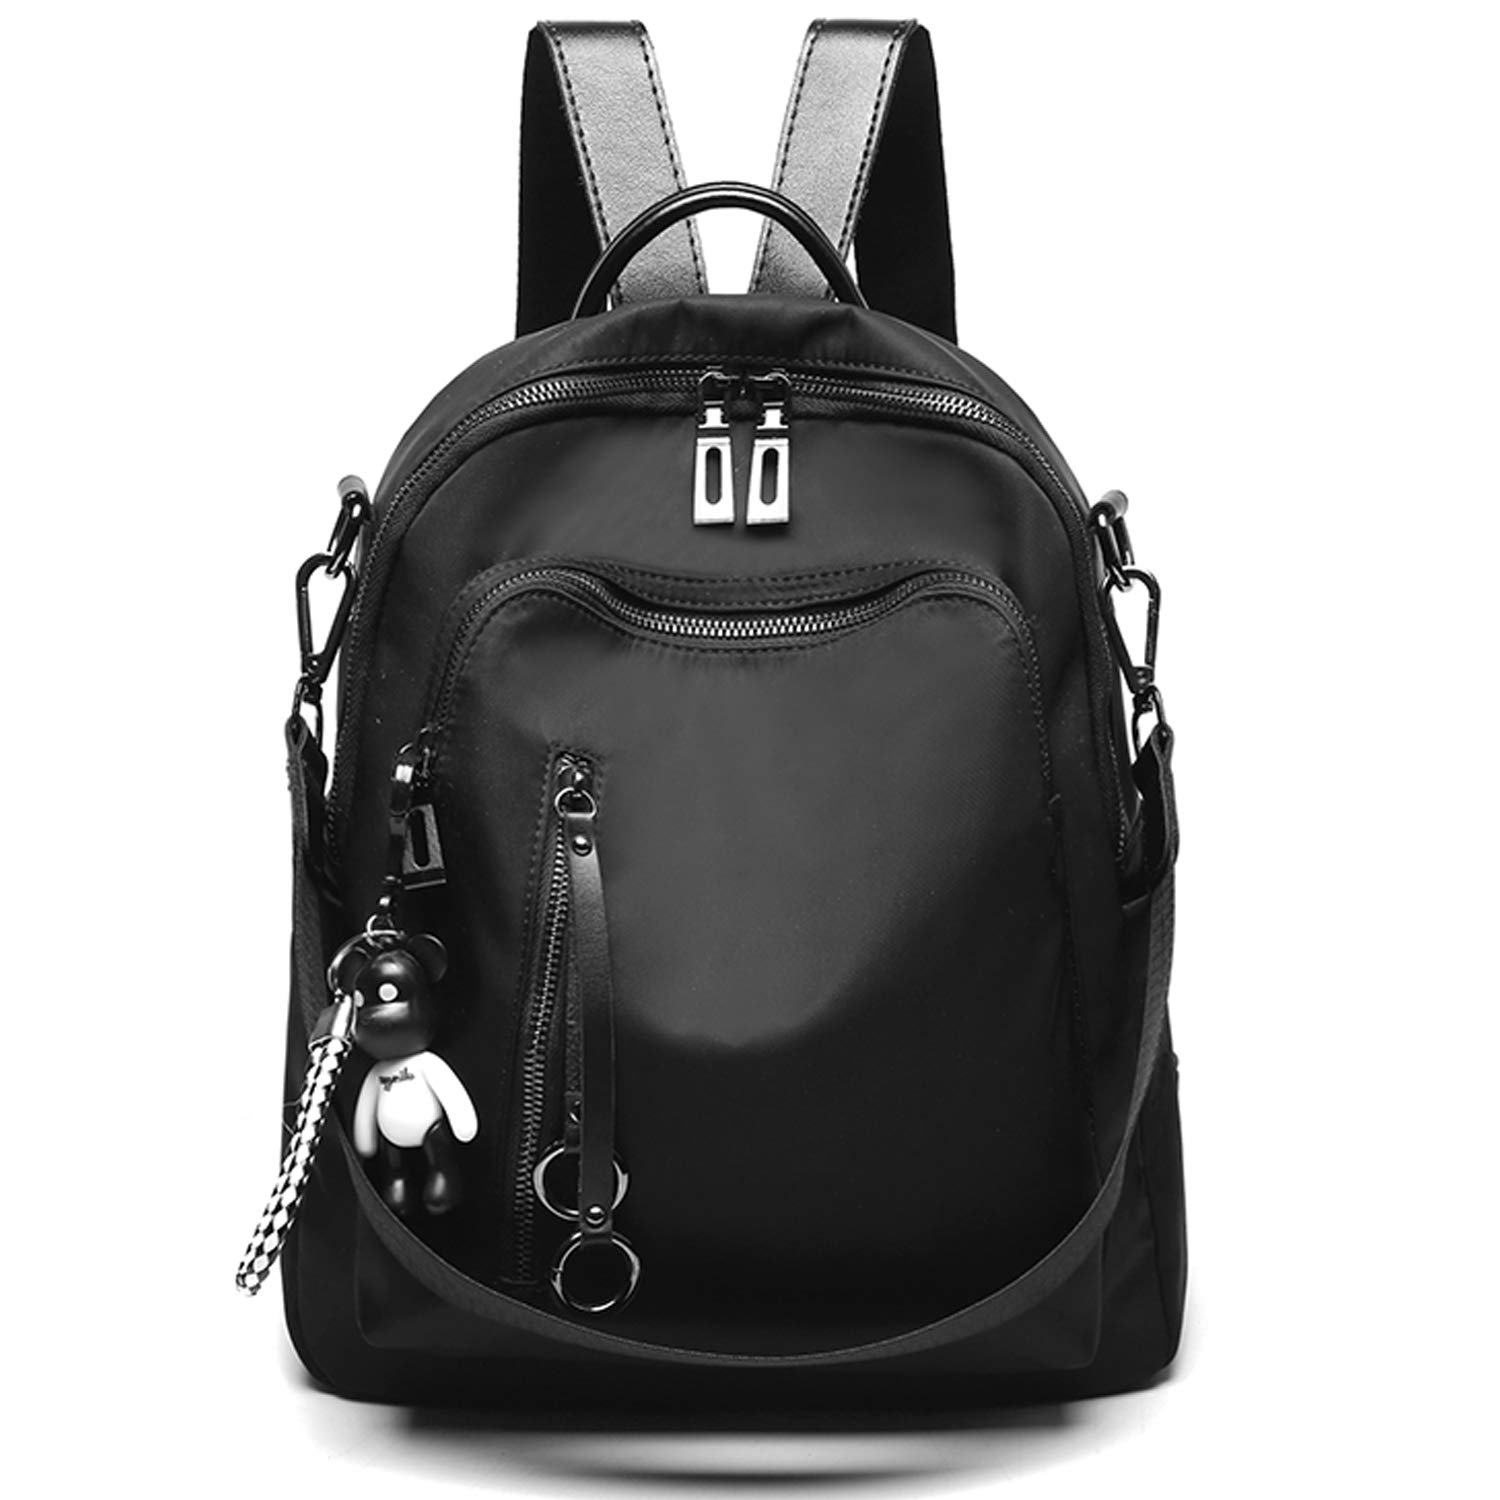 SYKT Backpack Purse for Women Fashion School PU Leather Purses and Hangbags Shoulder Bags